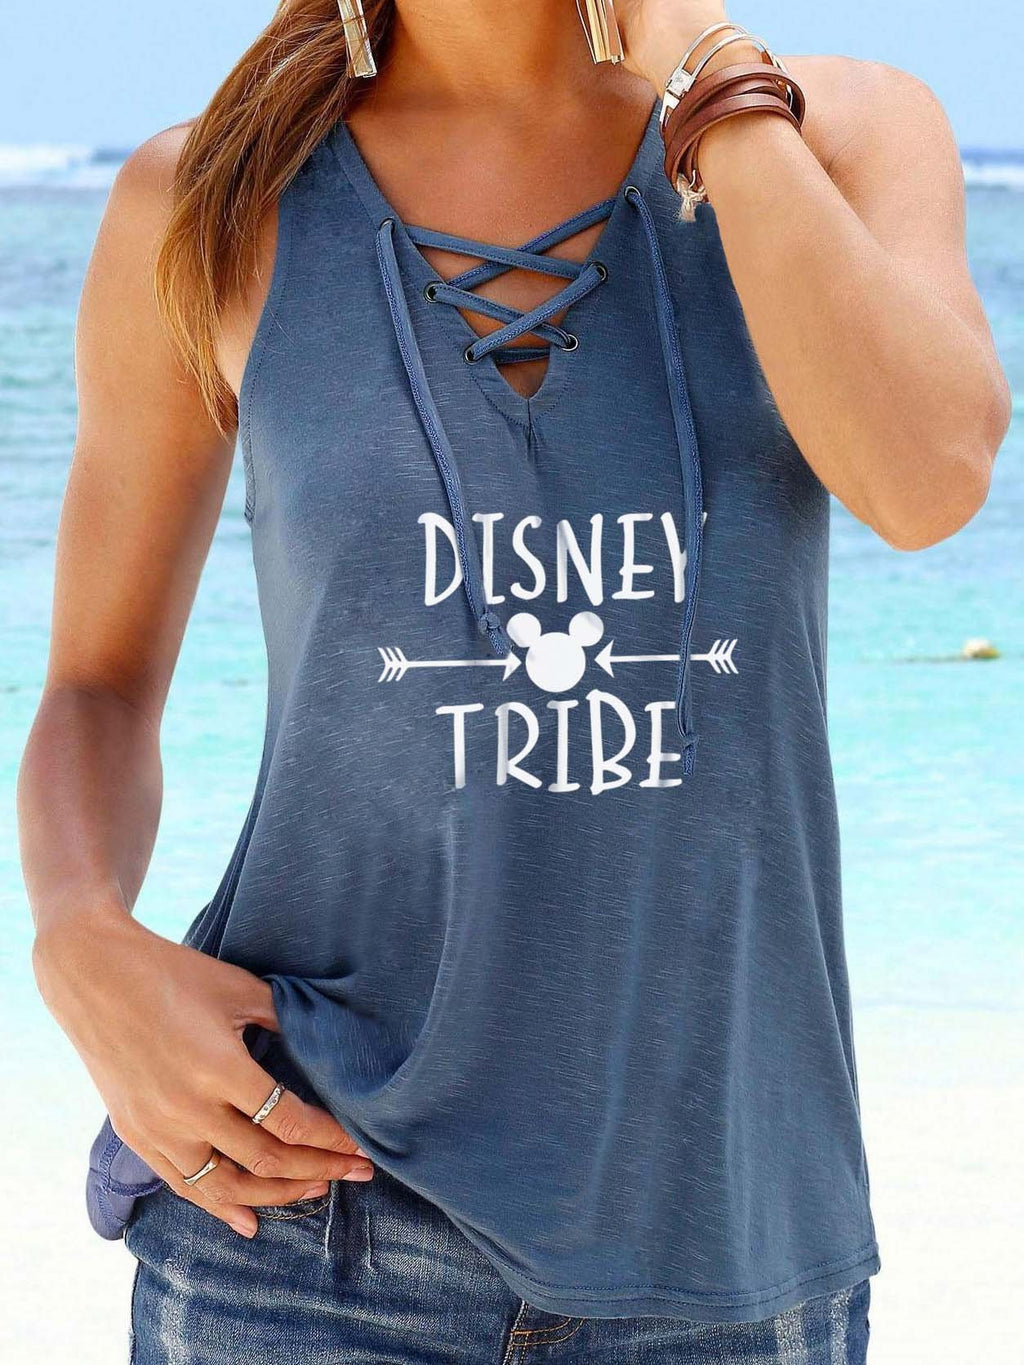 Disney Print V-Neck Weste Top mit Riemen